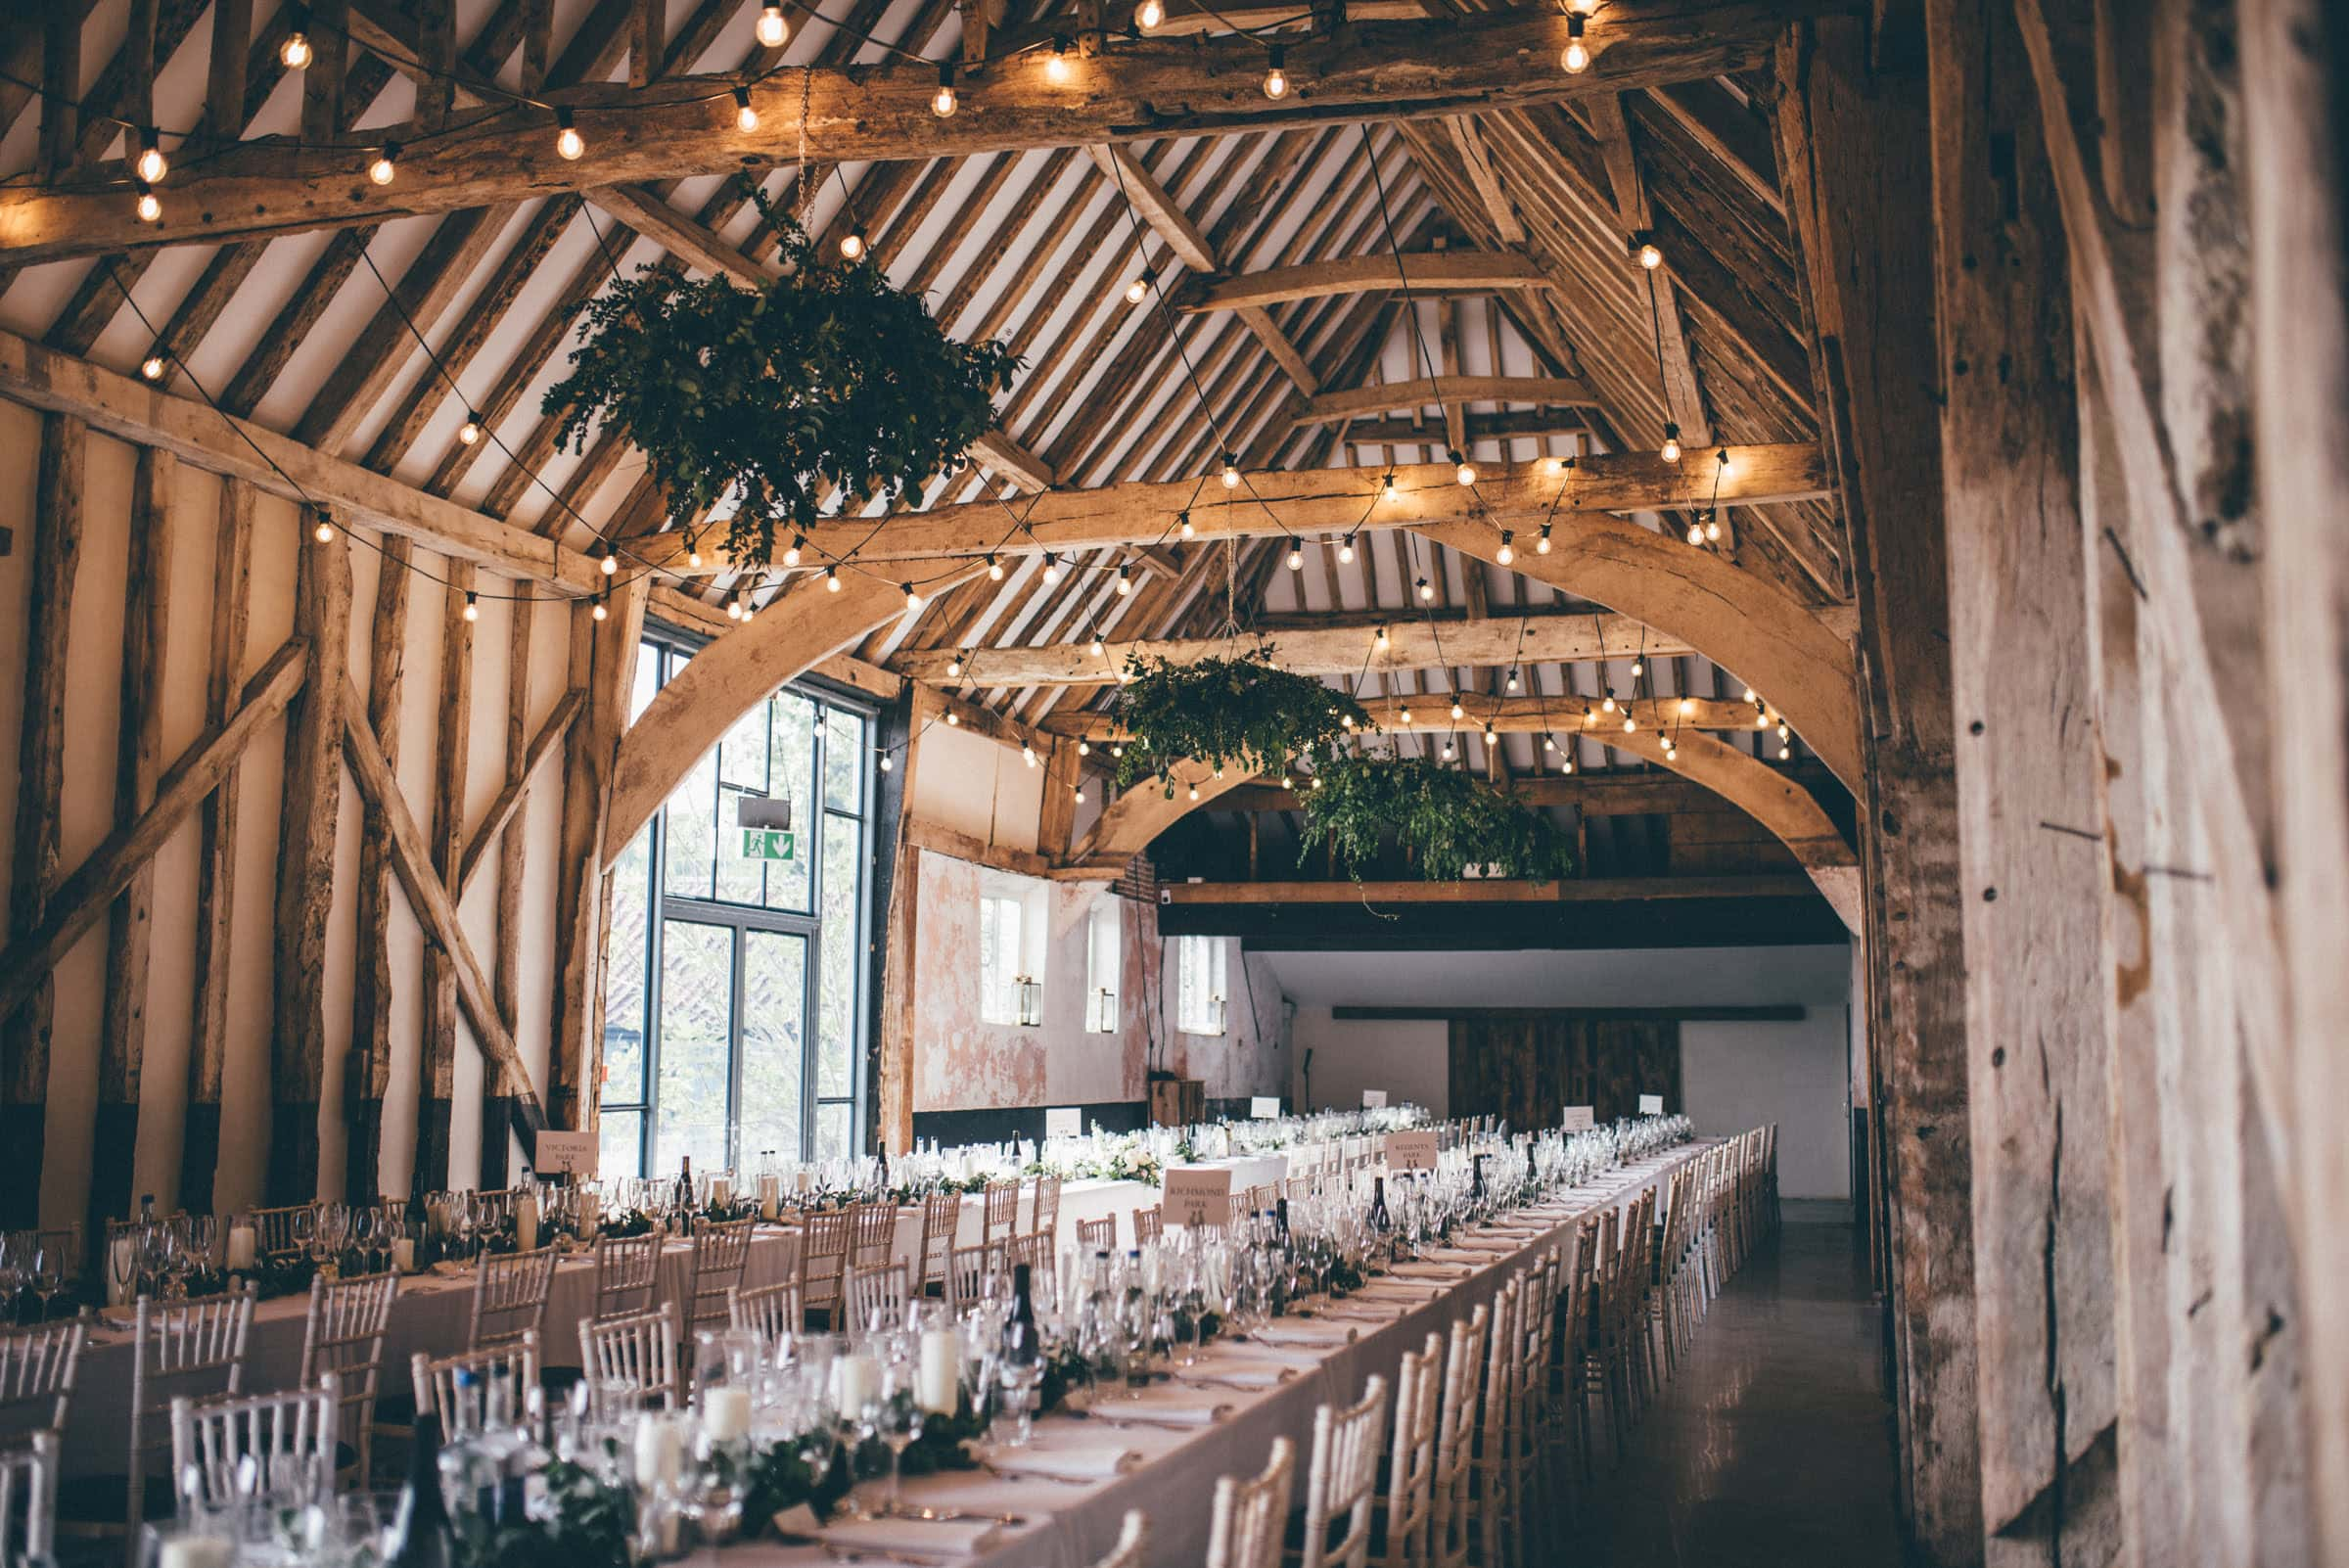 Henham Barns wedding with foliage chandeliers and eucalyptus